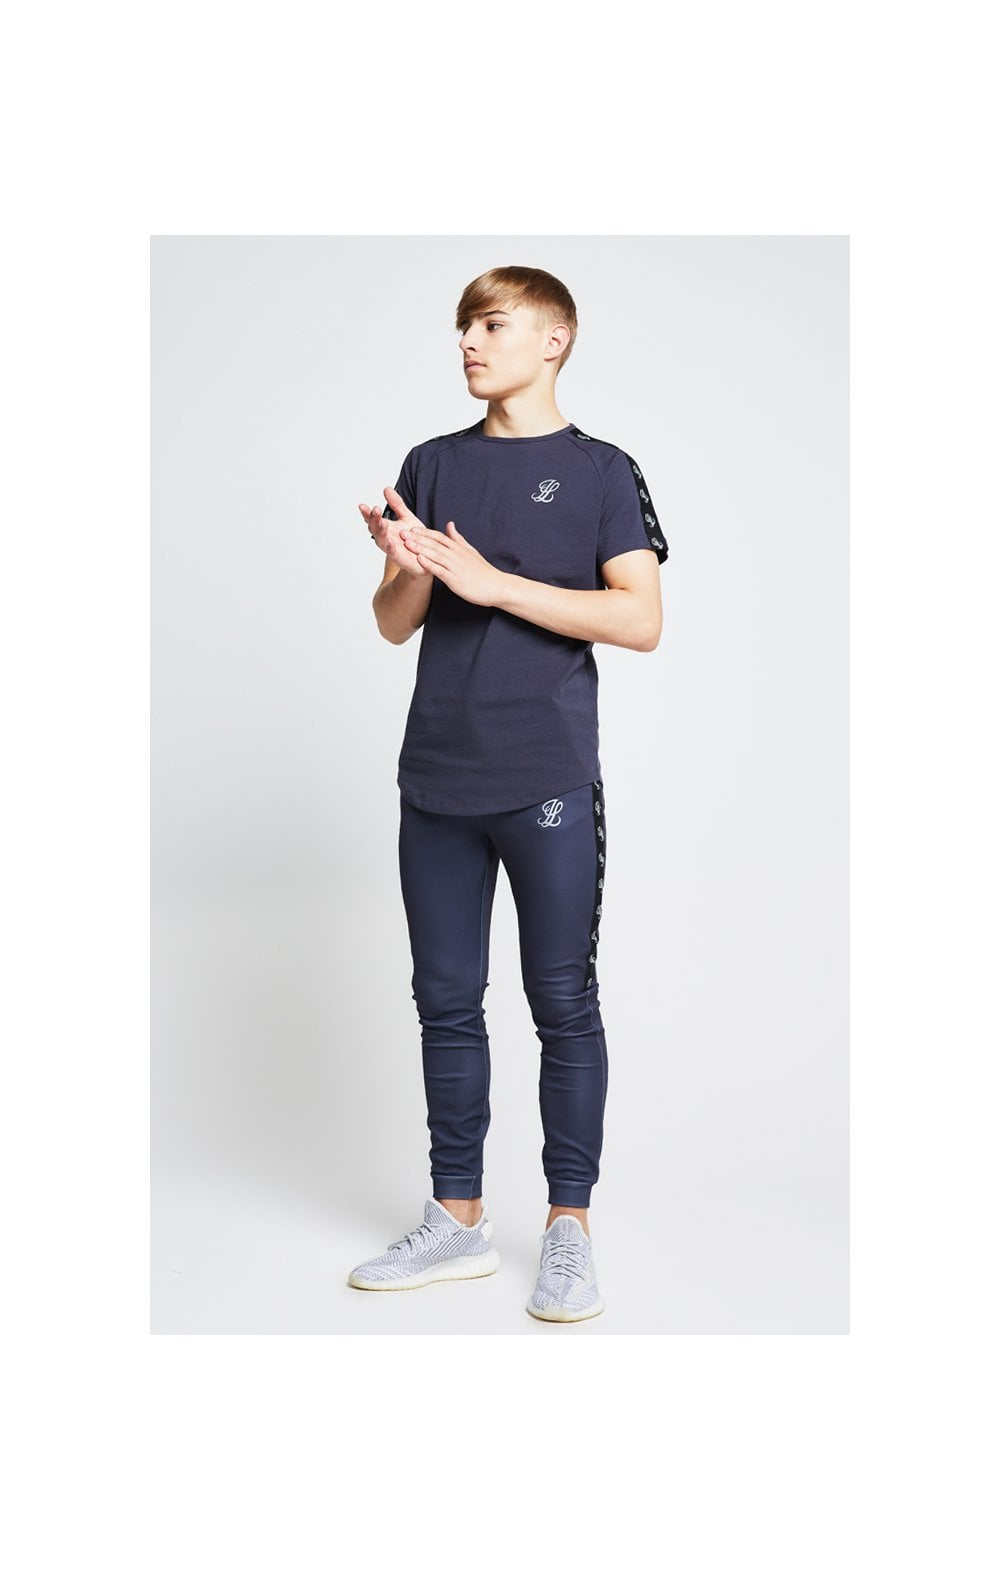 Illusive London Taped Raglan Tee - Grey (3)